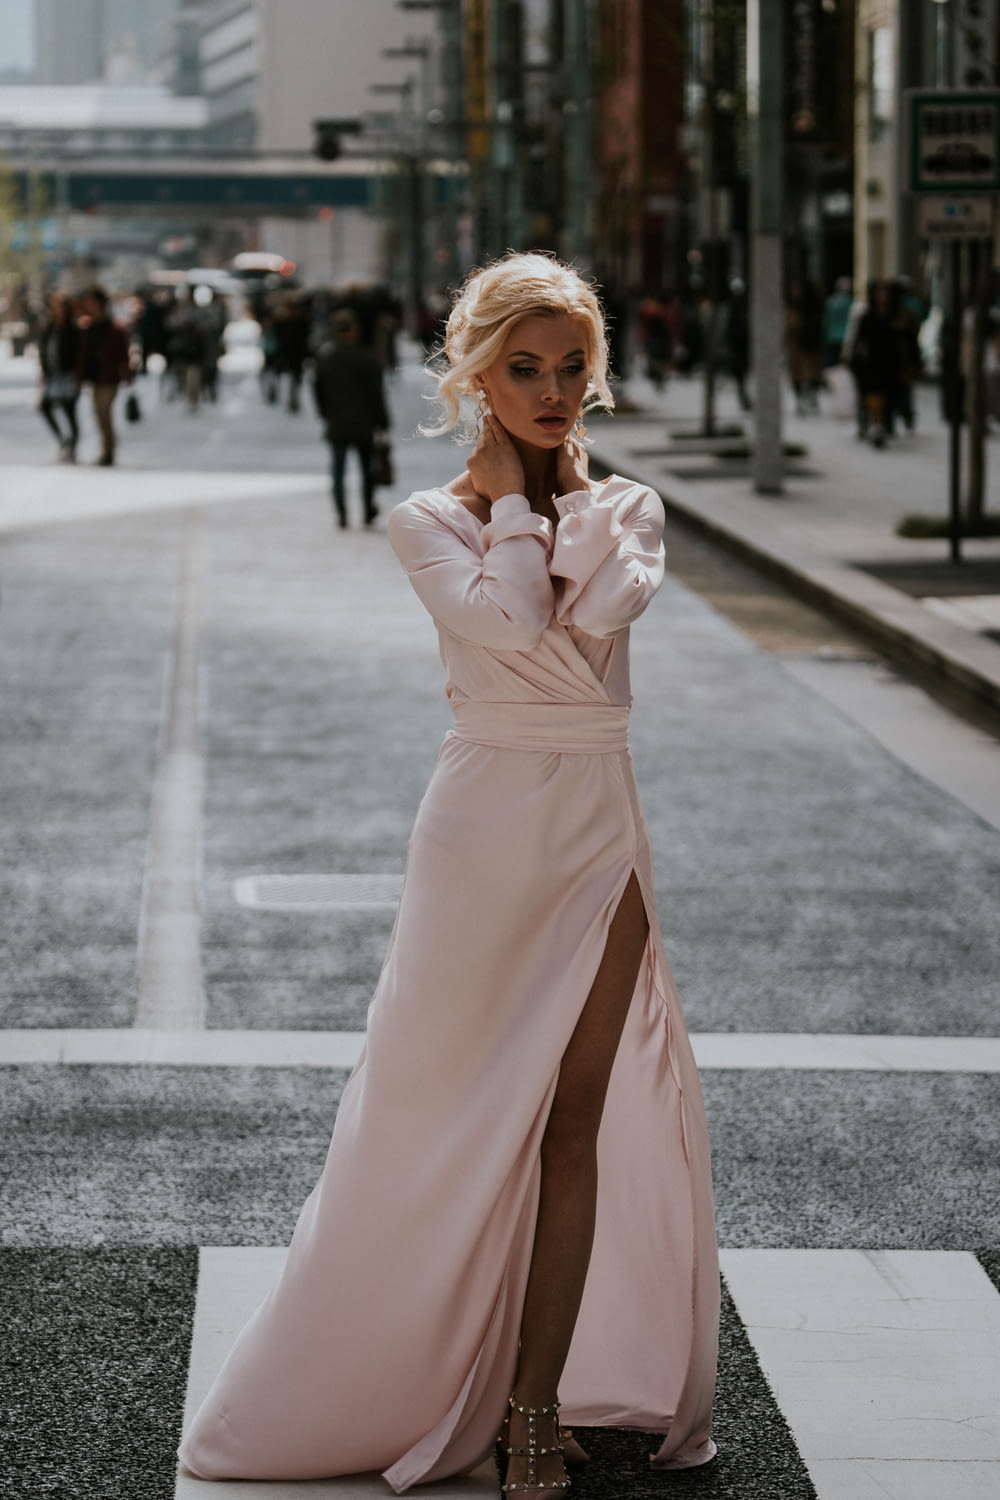 woman in pink long sleeve dress standing on road during daytime